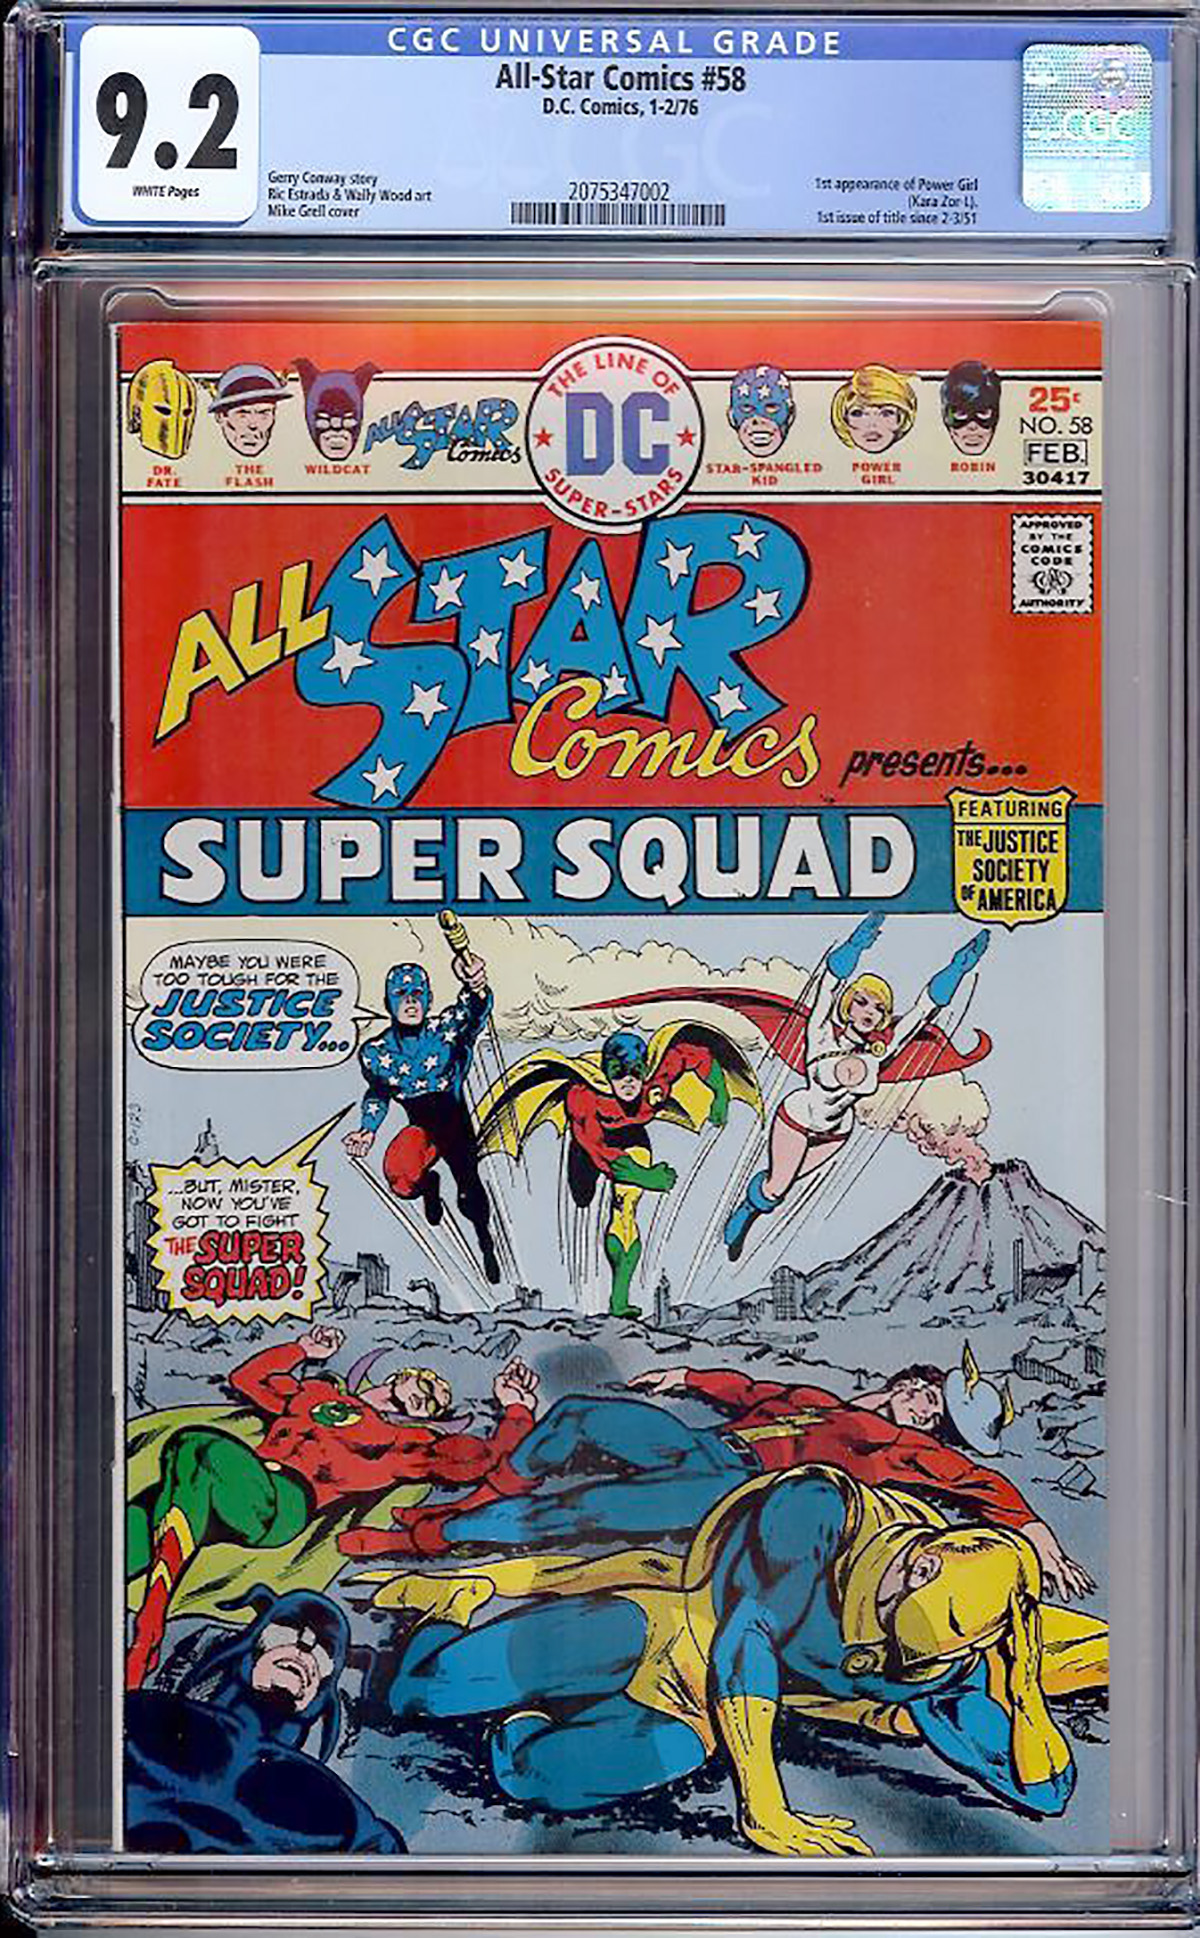 All-Star Comics #58 CGC 9.2 w Davie Collection